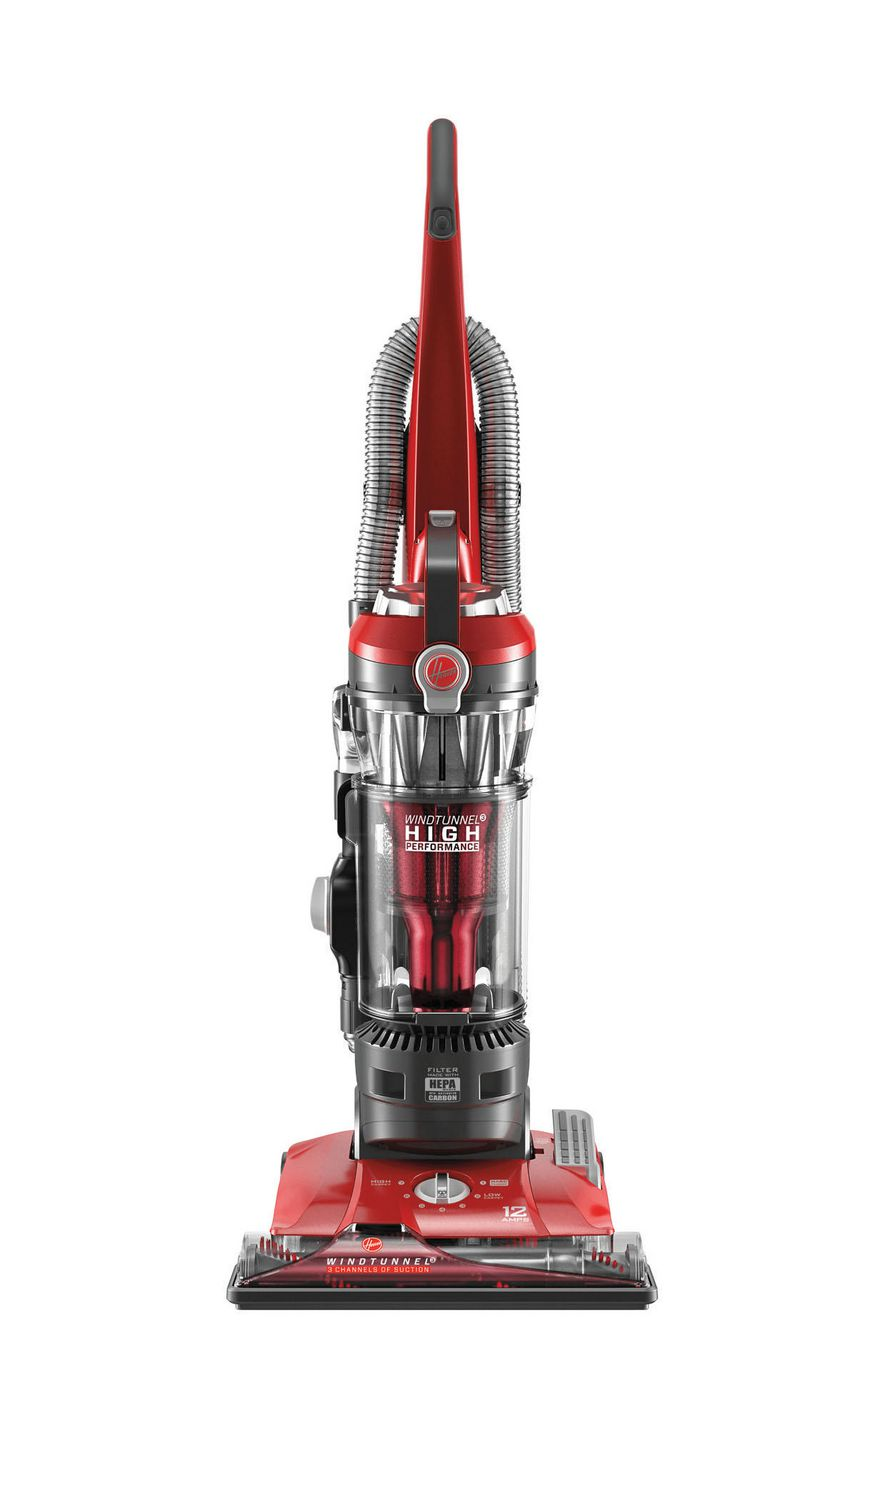 Hoover WindTunnelR 3 High Performance Bagless Upright Vacuum